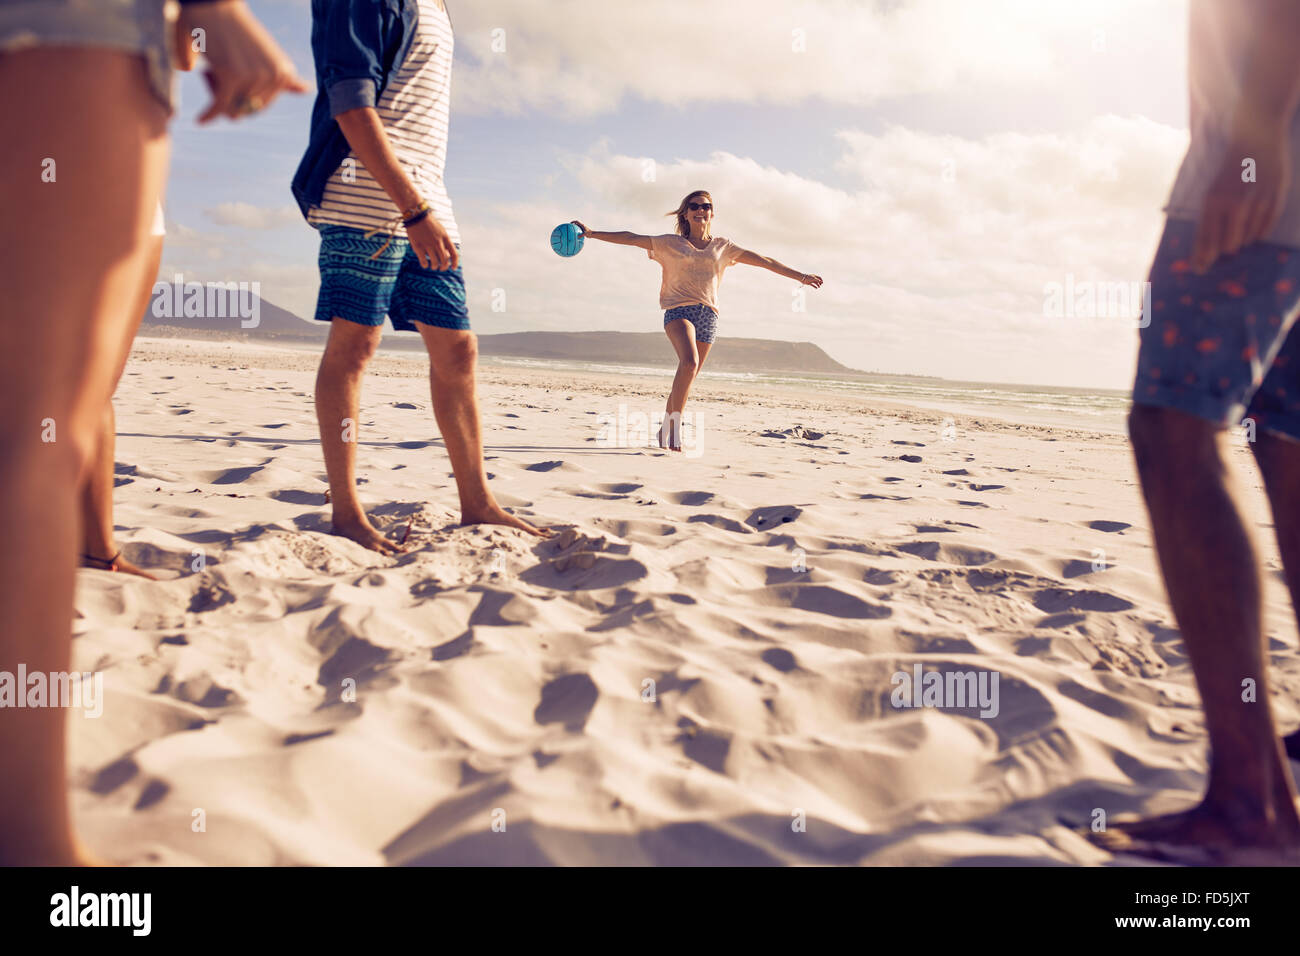 Low angle shot of young woman running on the beach with a ball with her friends standing in front. Group of friends - Stock Image